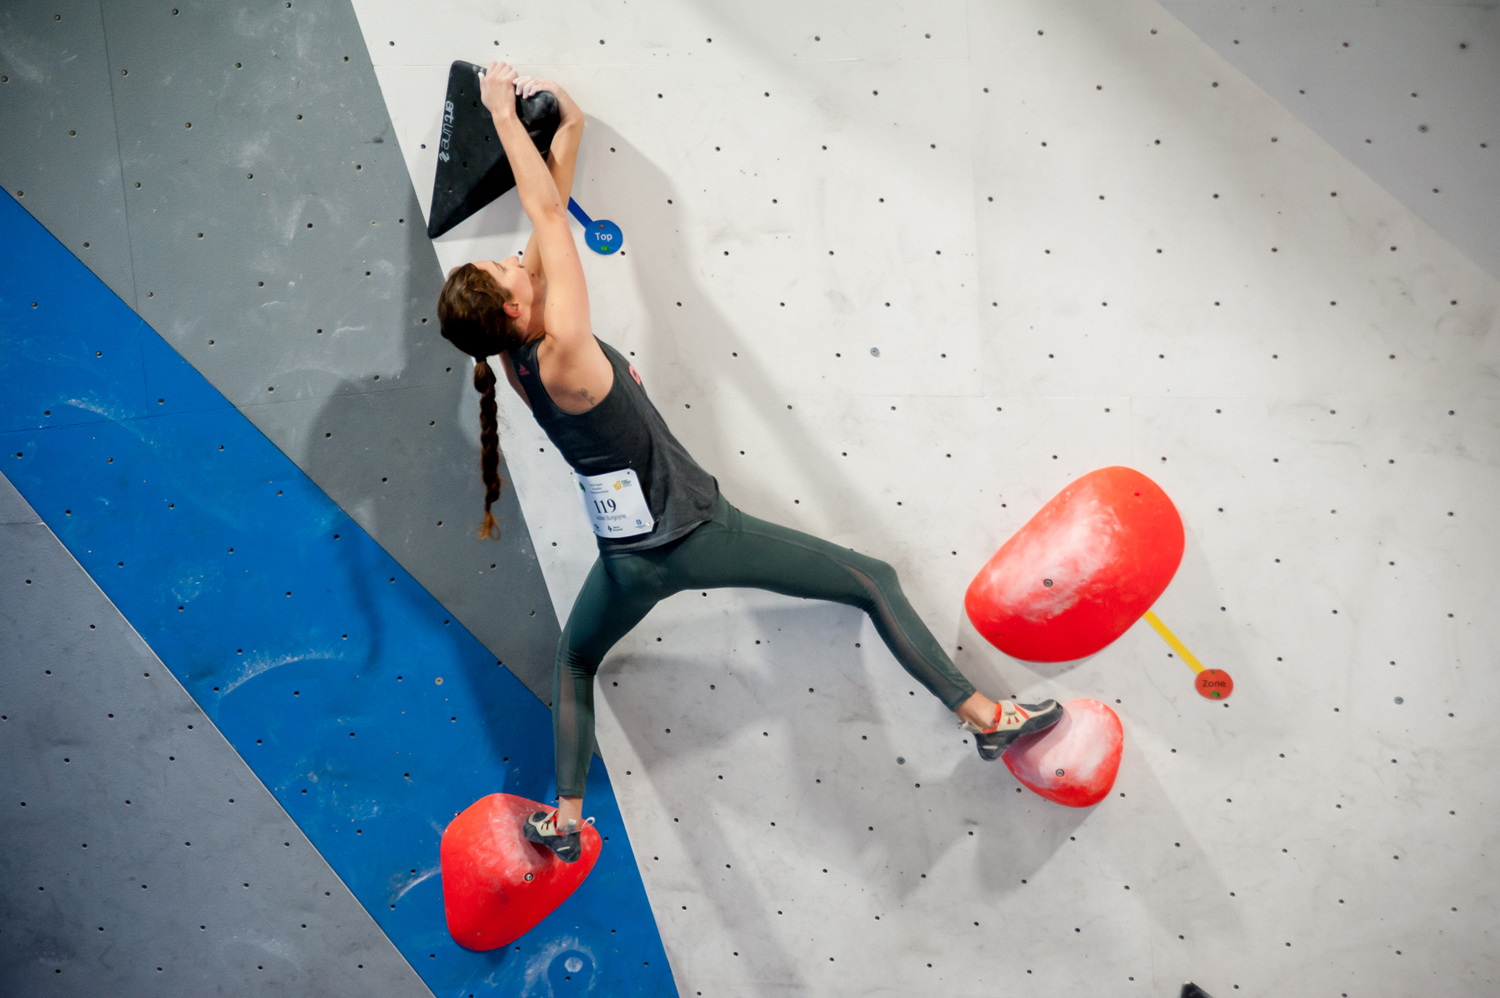 Climbing Rocks Professional Climbing Photography Competition Open Bouldering Championships 2019 (6)